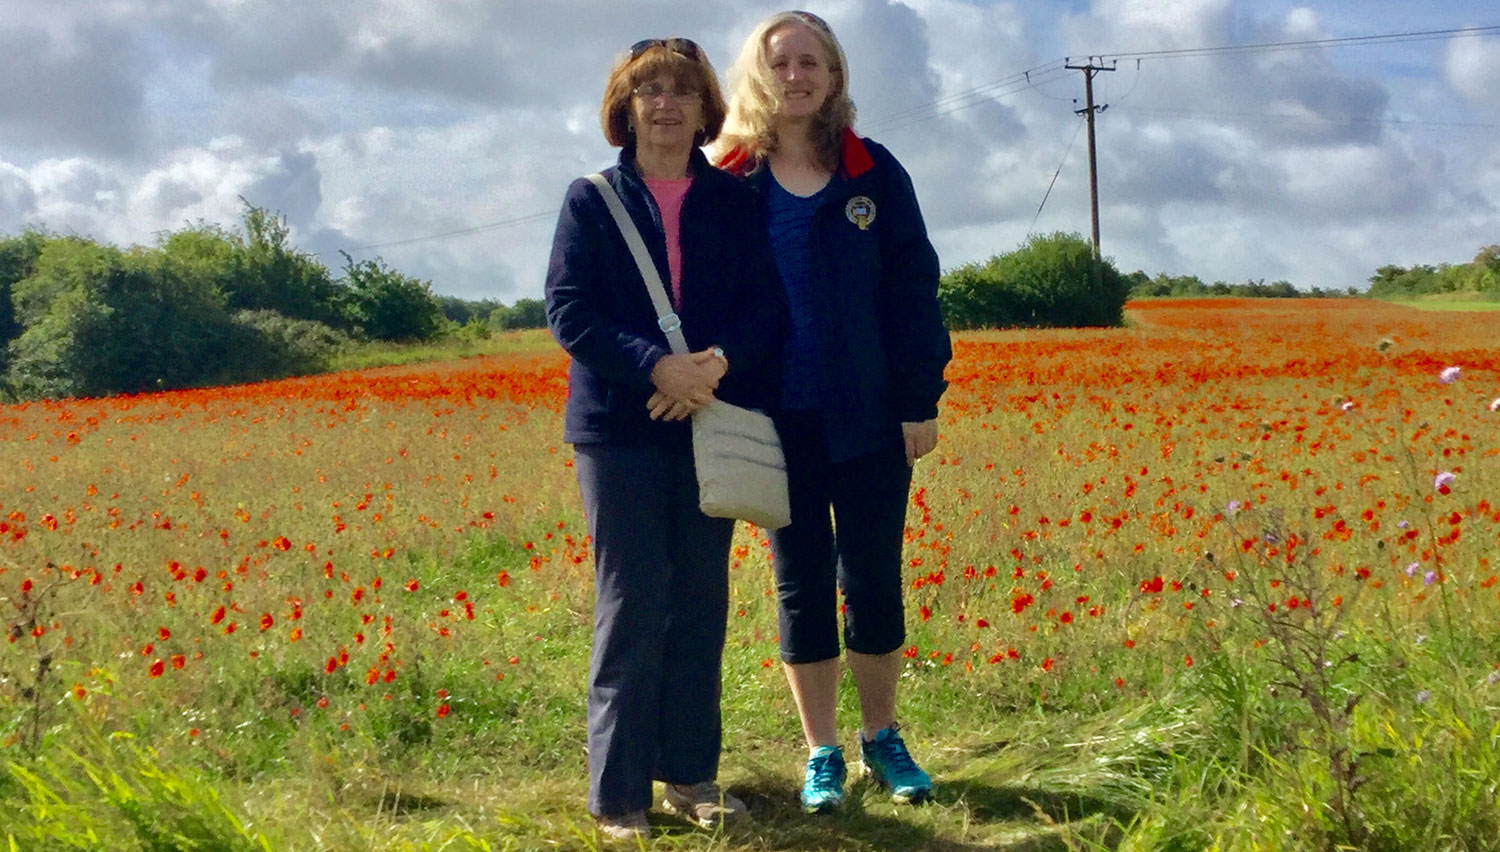 CLIENTS WILD POPPY FIELD, TEMPLE GUITING